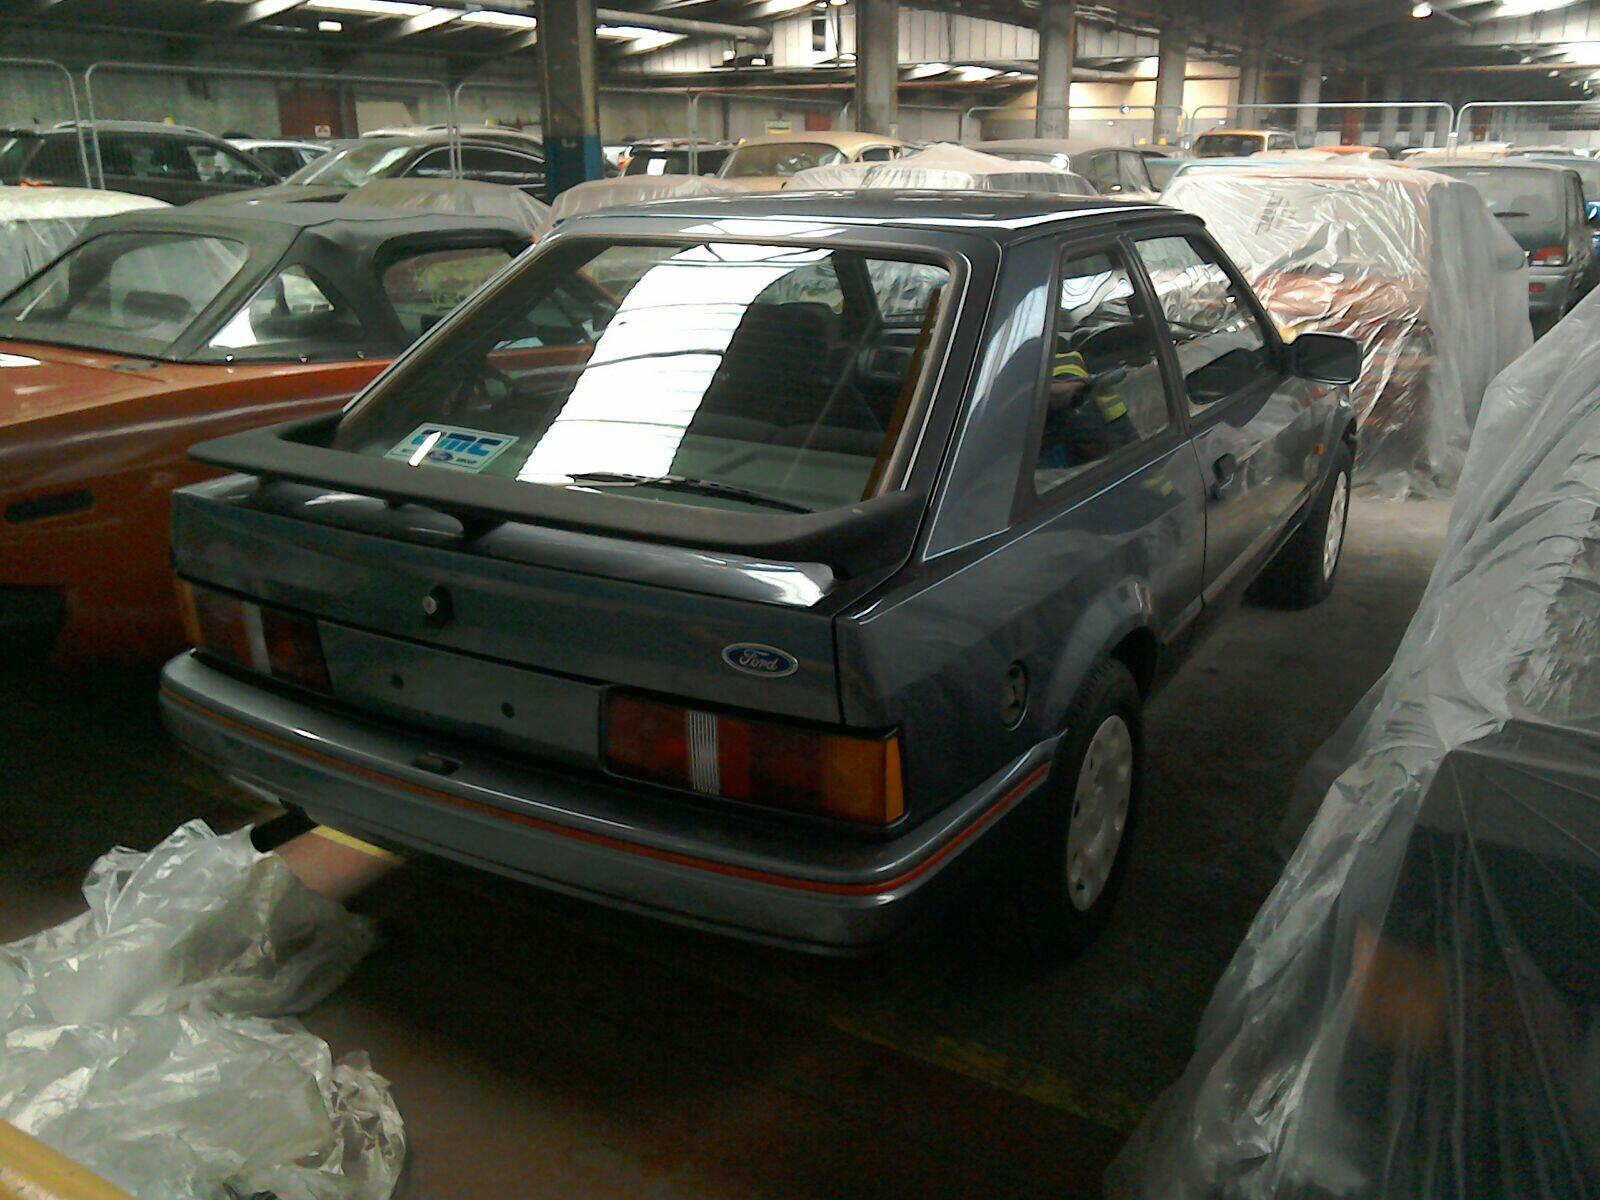 1987 FORD ESCORT MK4 1986 TO 1990 3 DOOR HATCHBACK